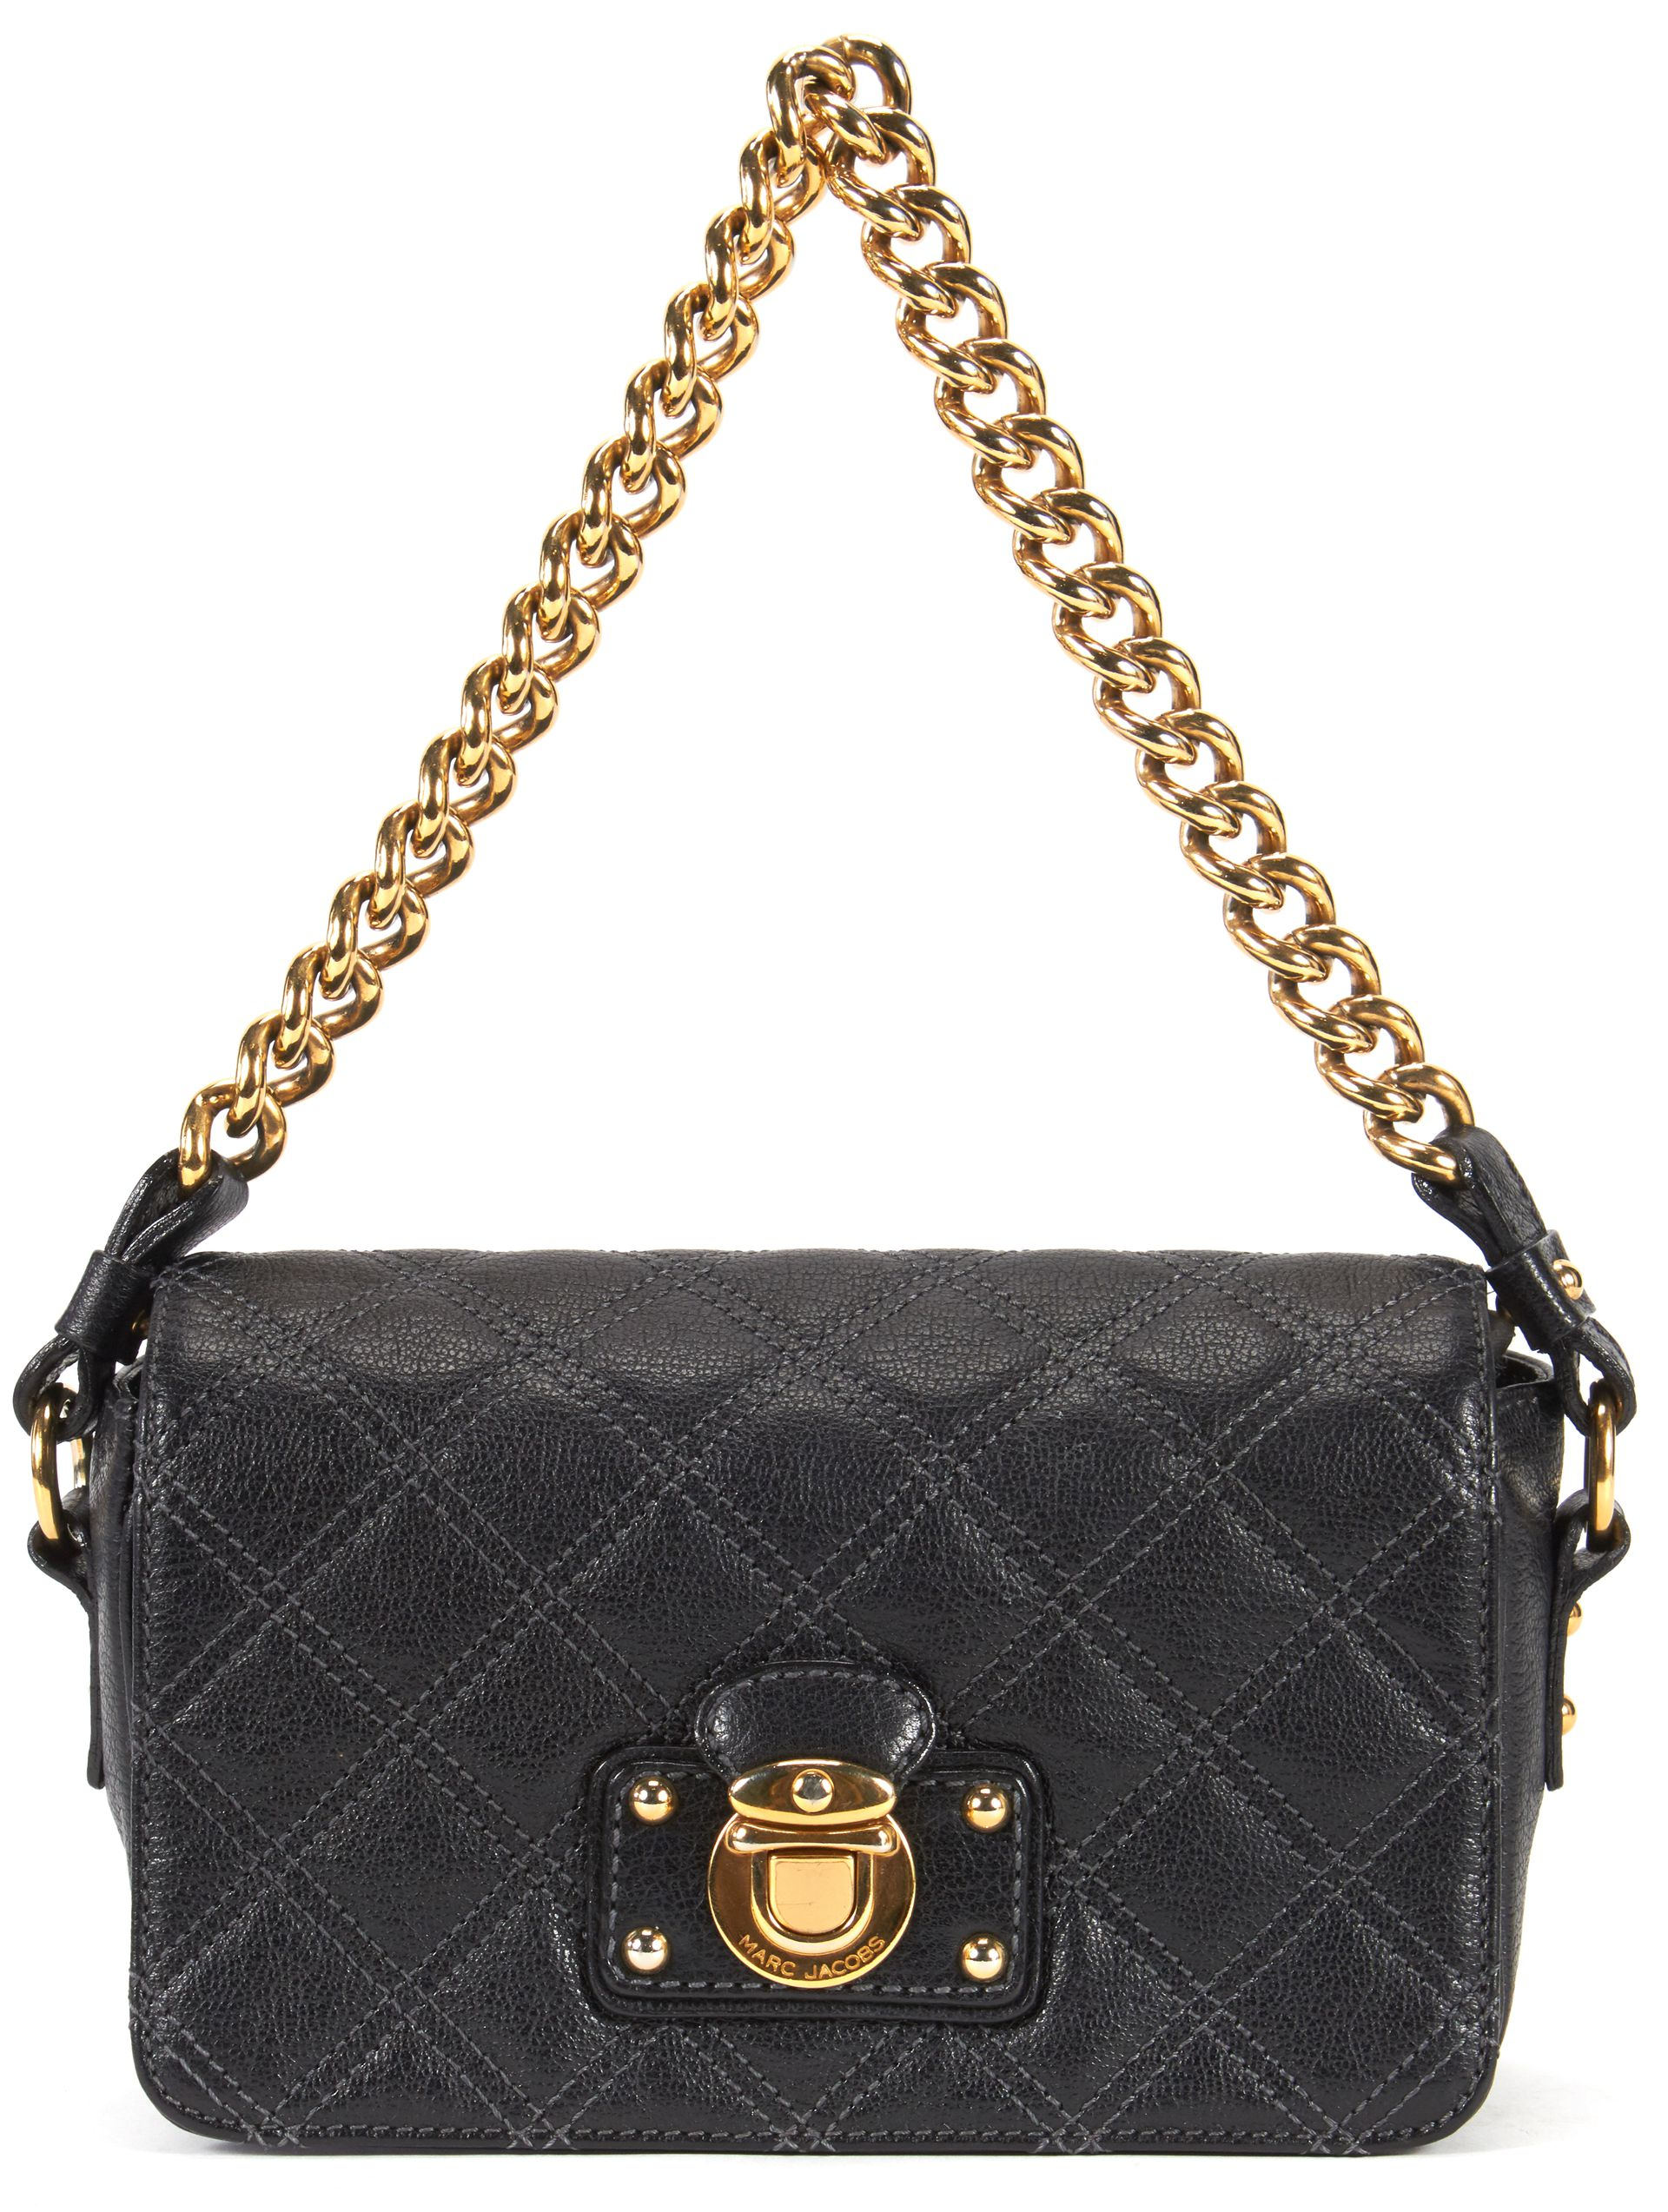 Marc Jacobs Black Quilted Leather Gold Chain Strap Shoulder Bag ...